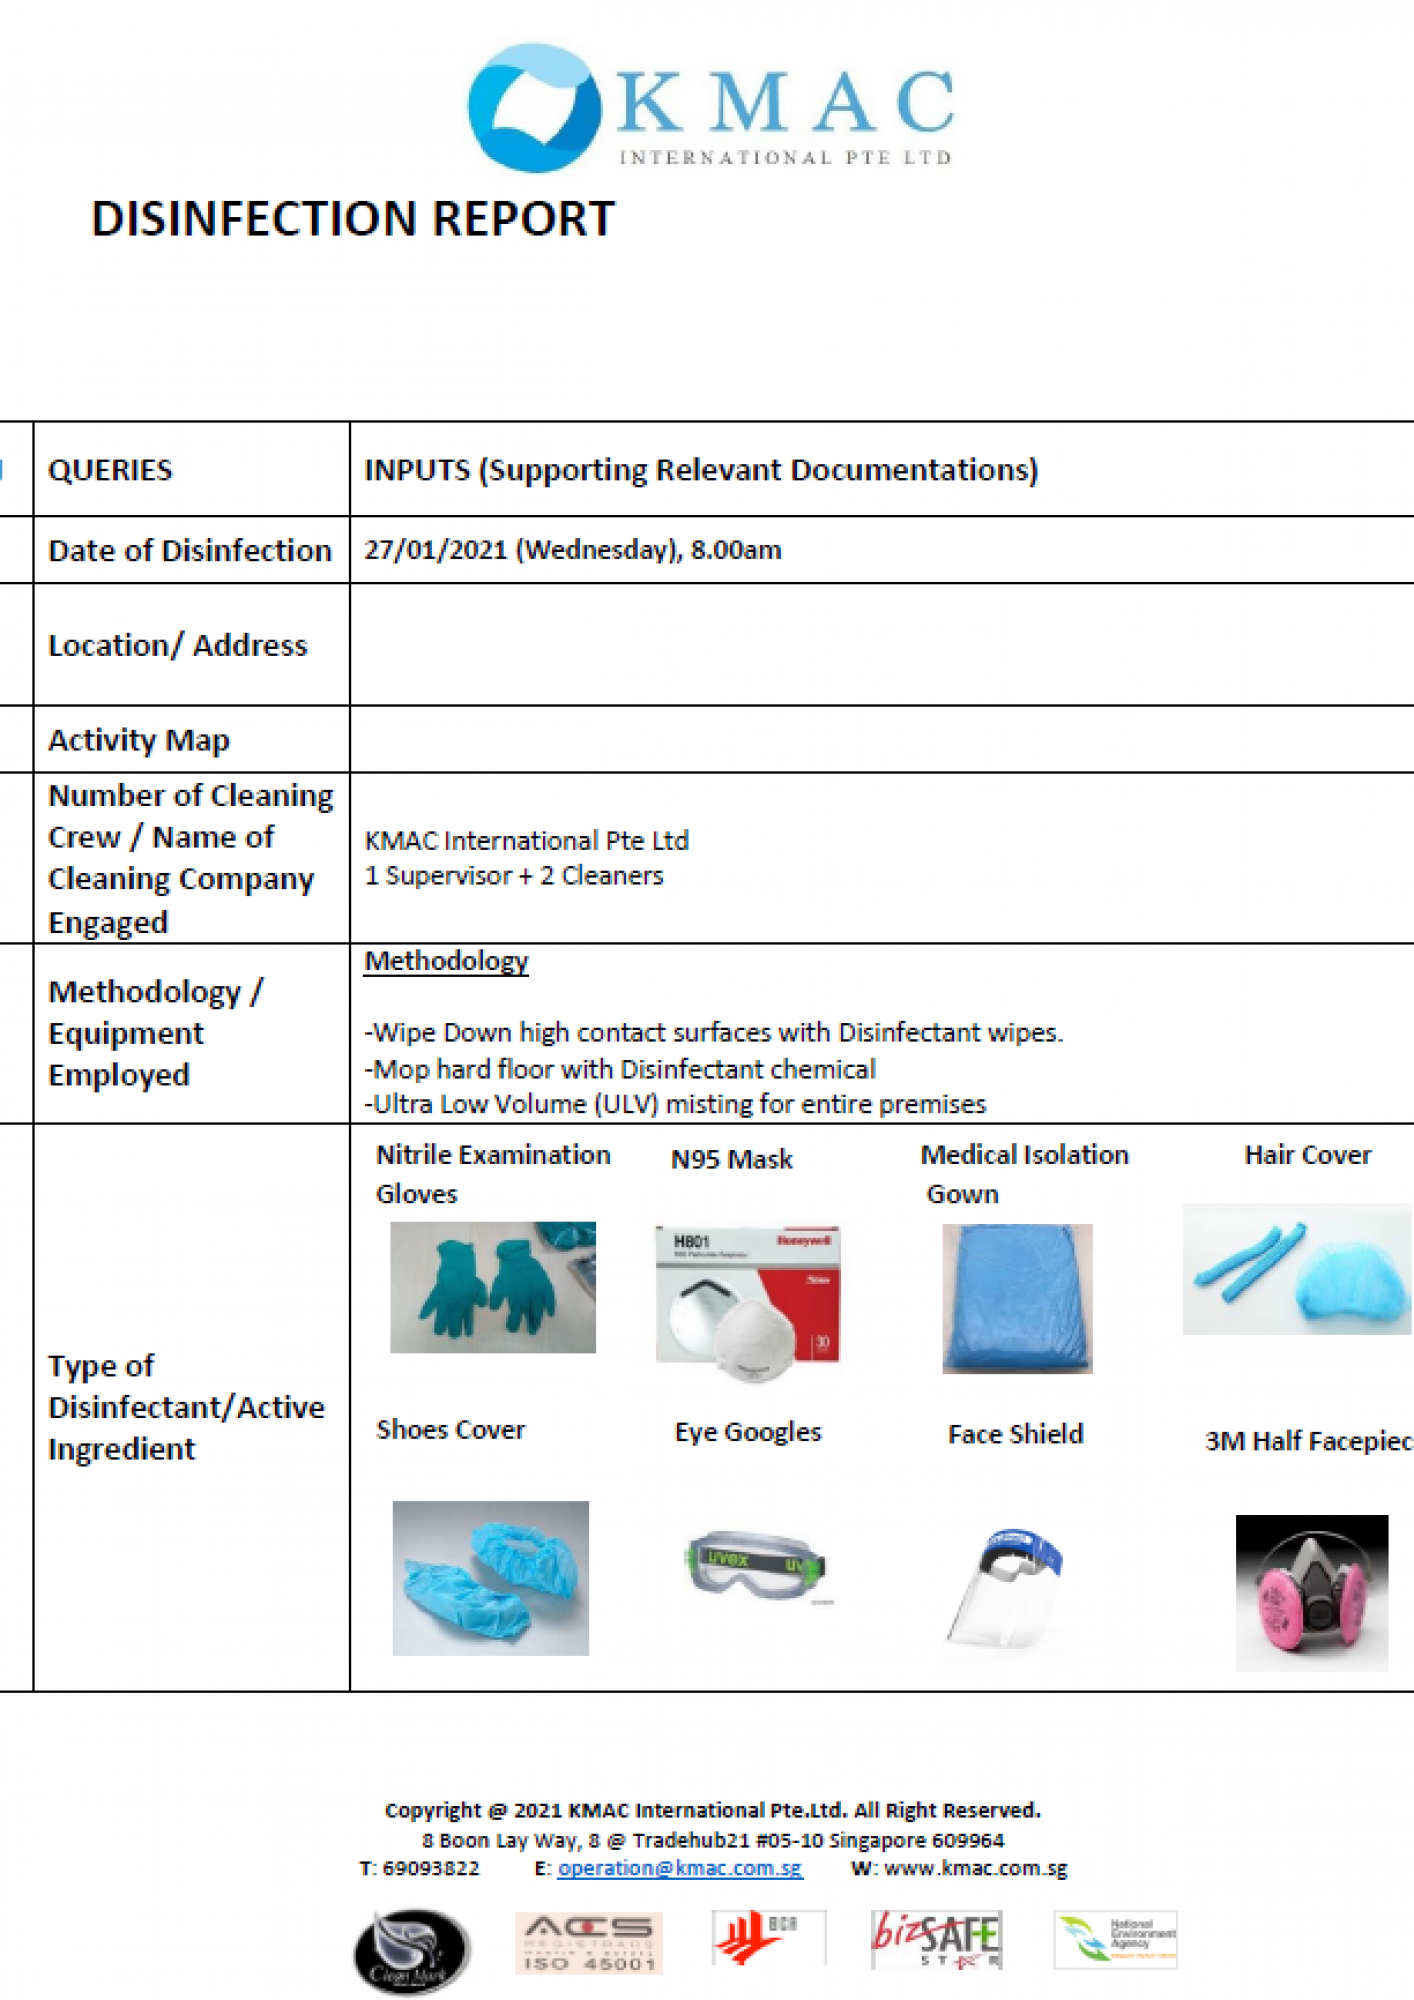 https://kmac.com.sg/wp-content/uploads/2021/08/Disinfection-Report-Sample-1414x2000.png